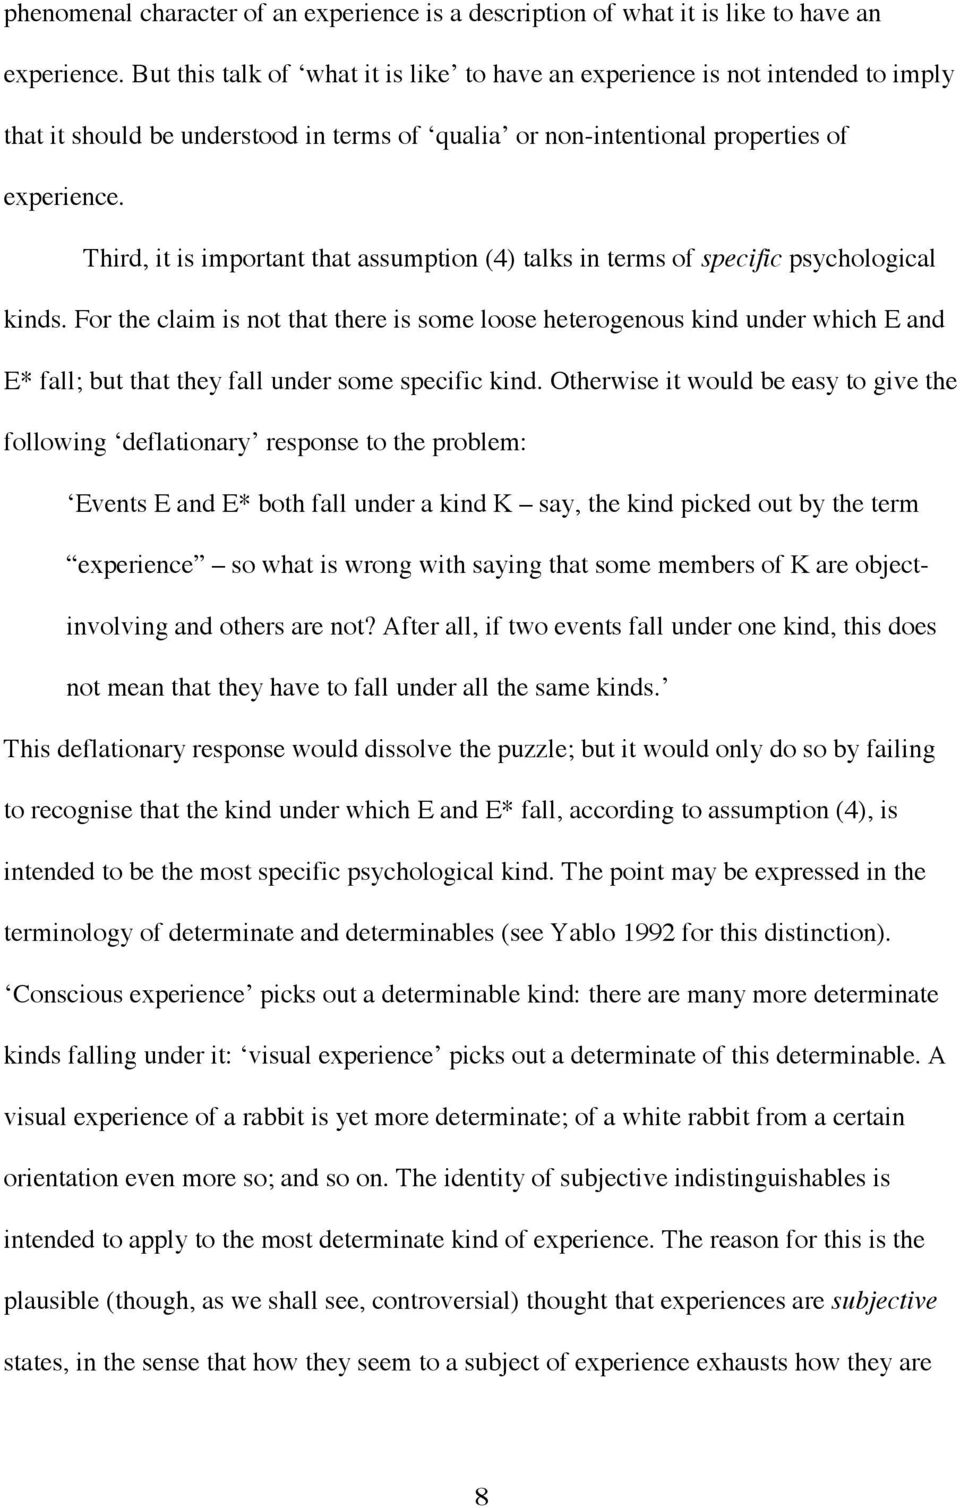 Third, it is important that assumption (4) talks in terms of specific psychological kinds.